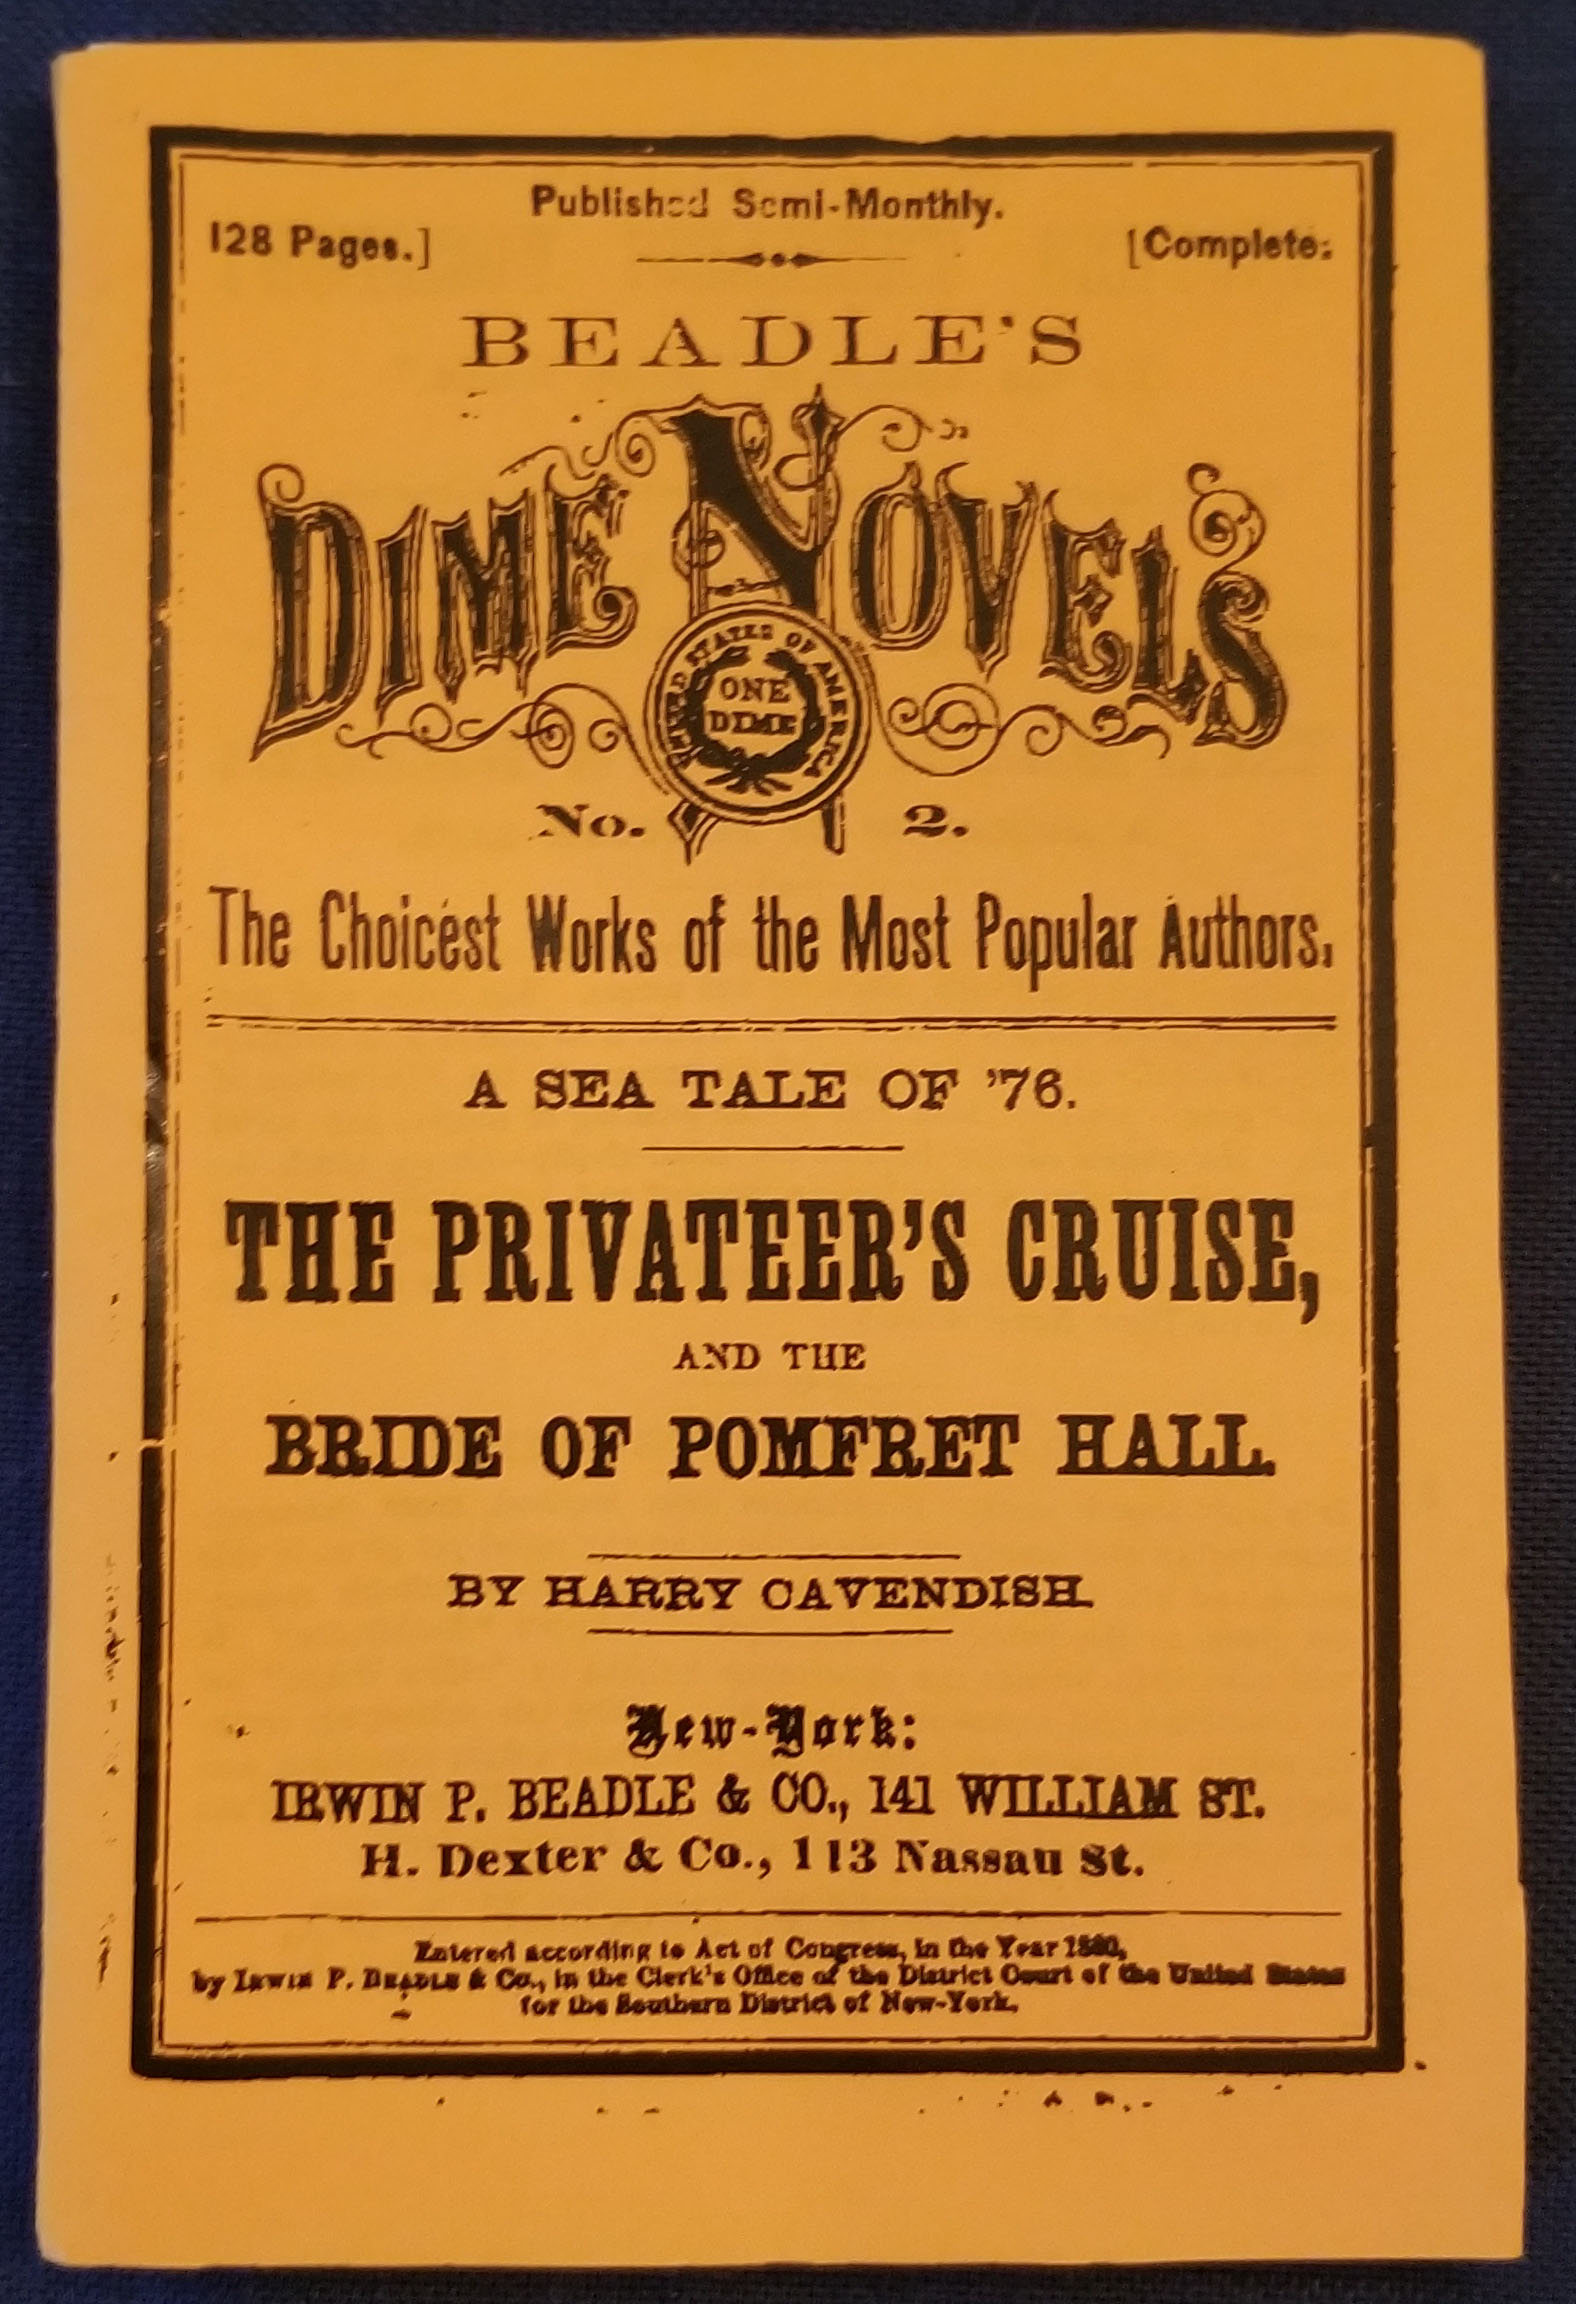 Dime Novel - The Privateer's Cruise